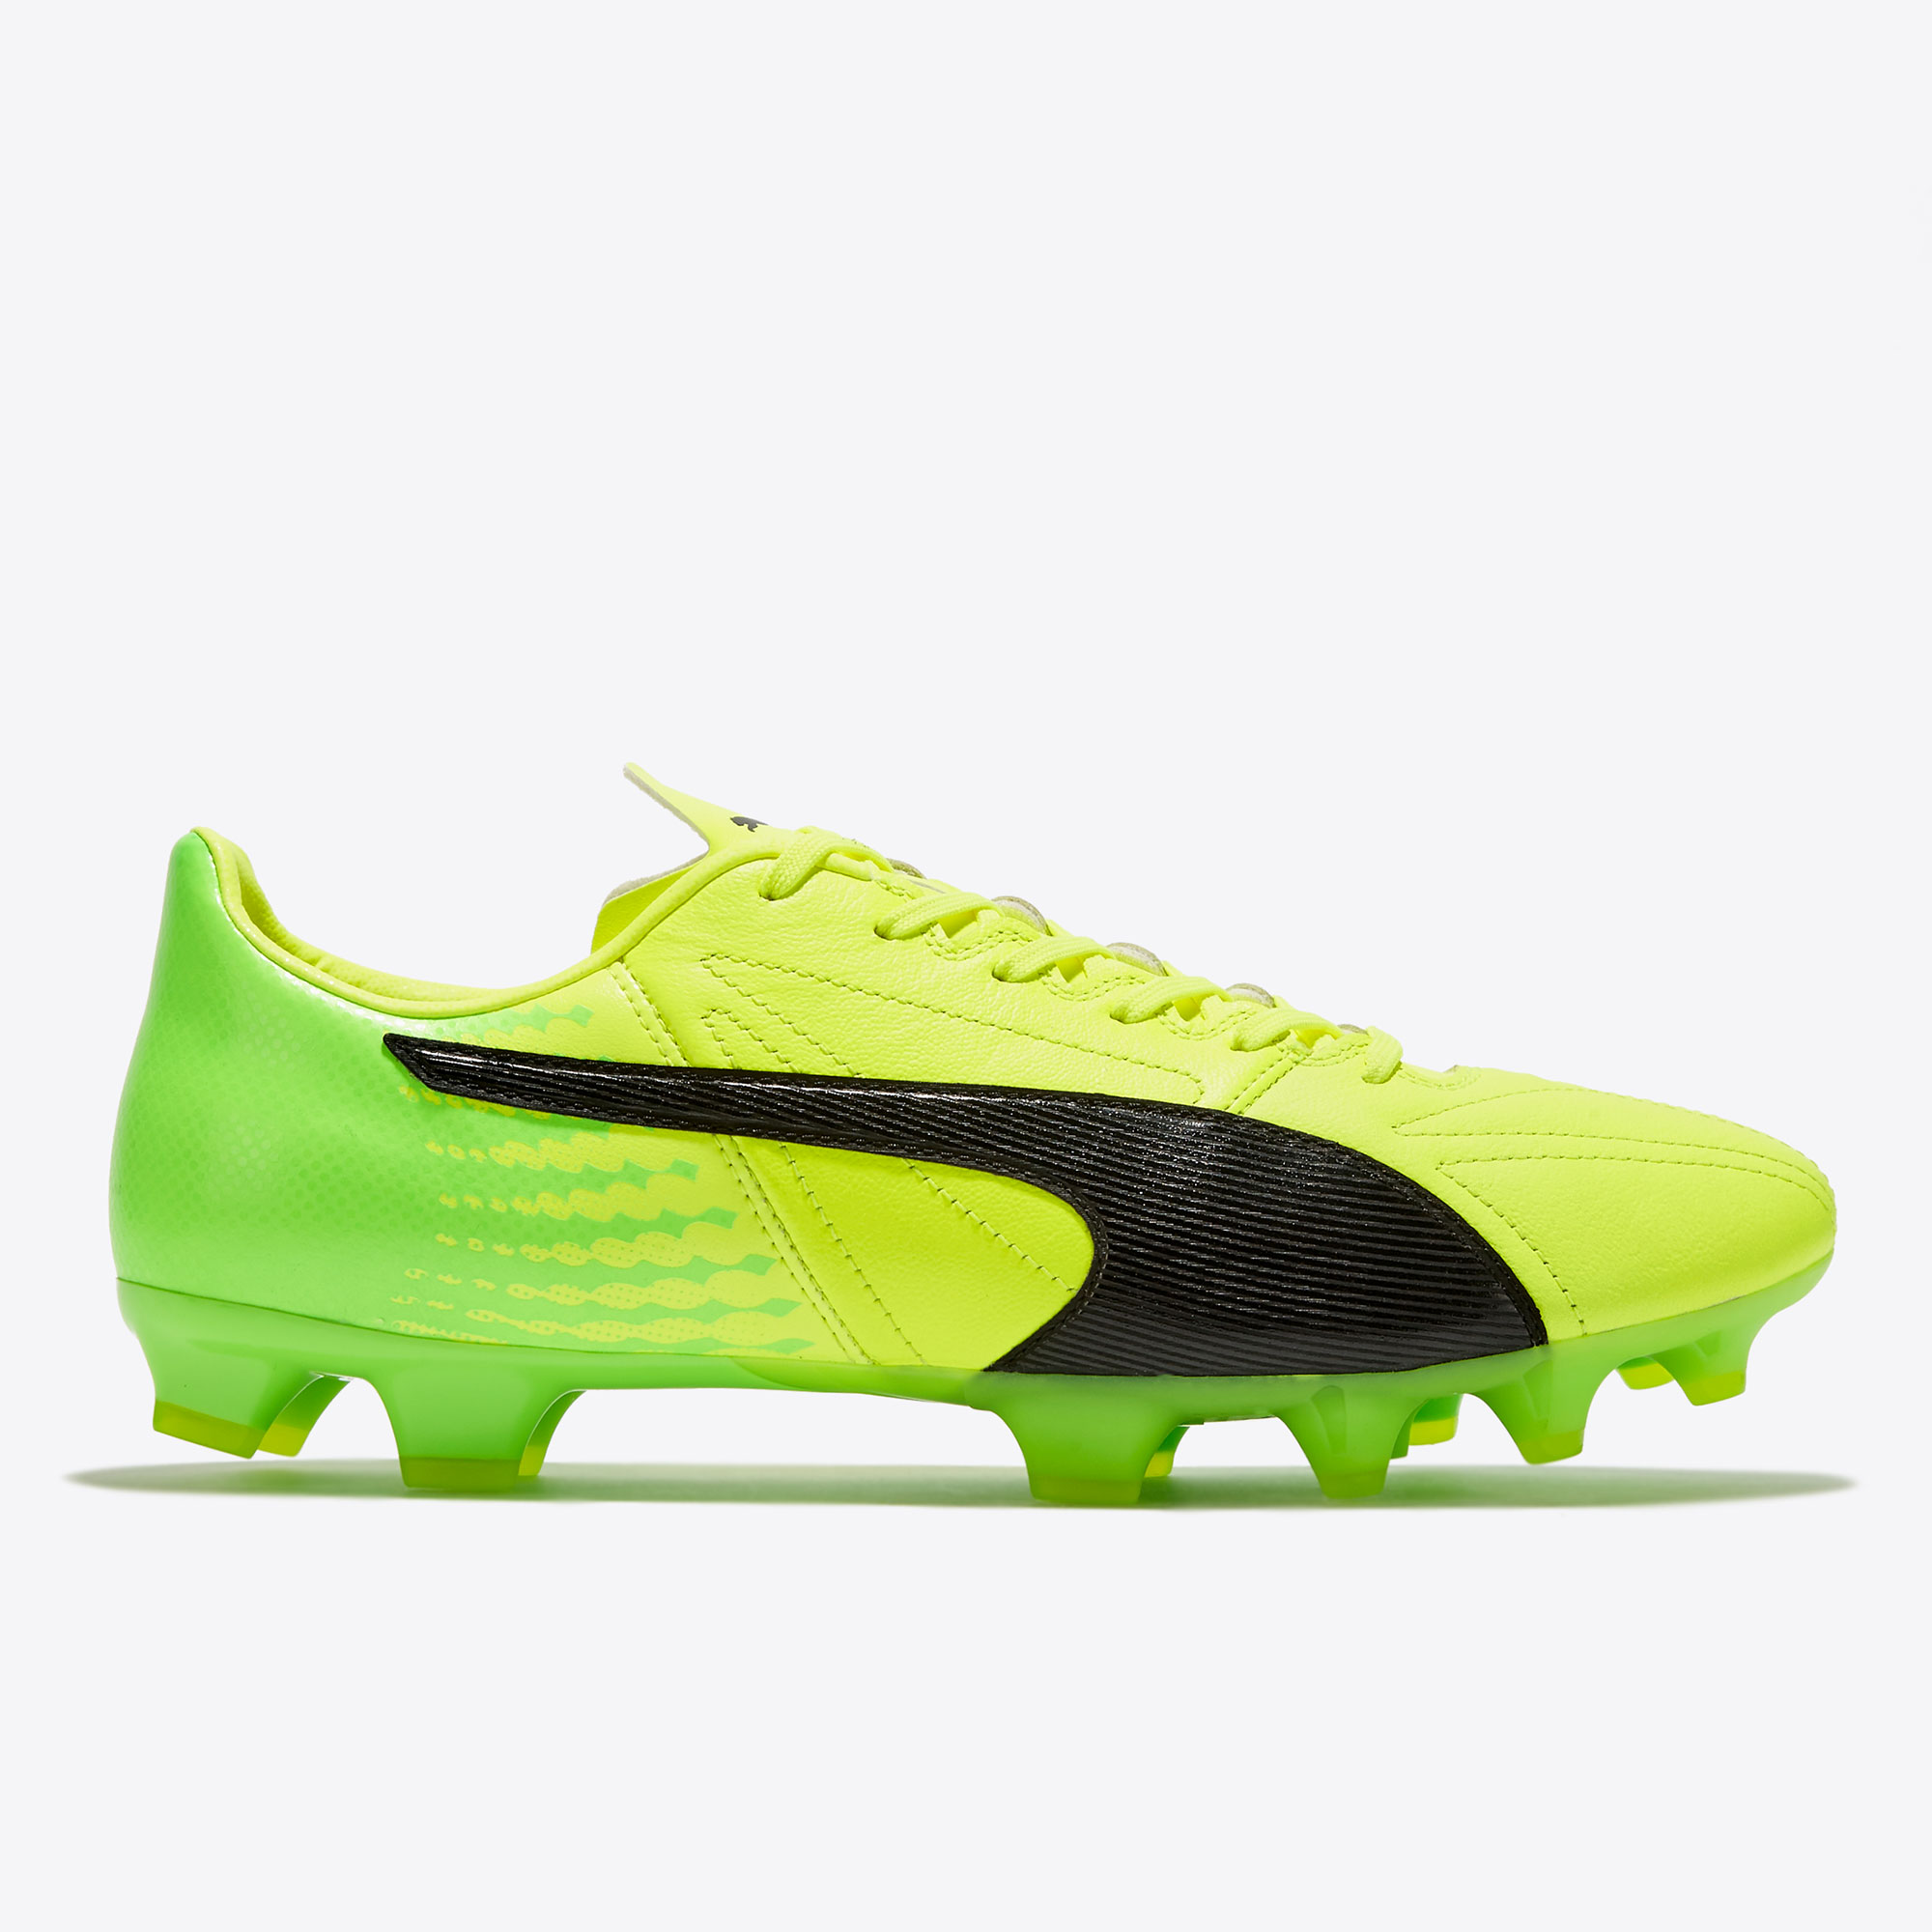 Puma evoSPEED 17.2 Leather FG Safety Yellow/